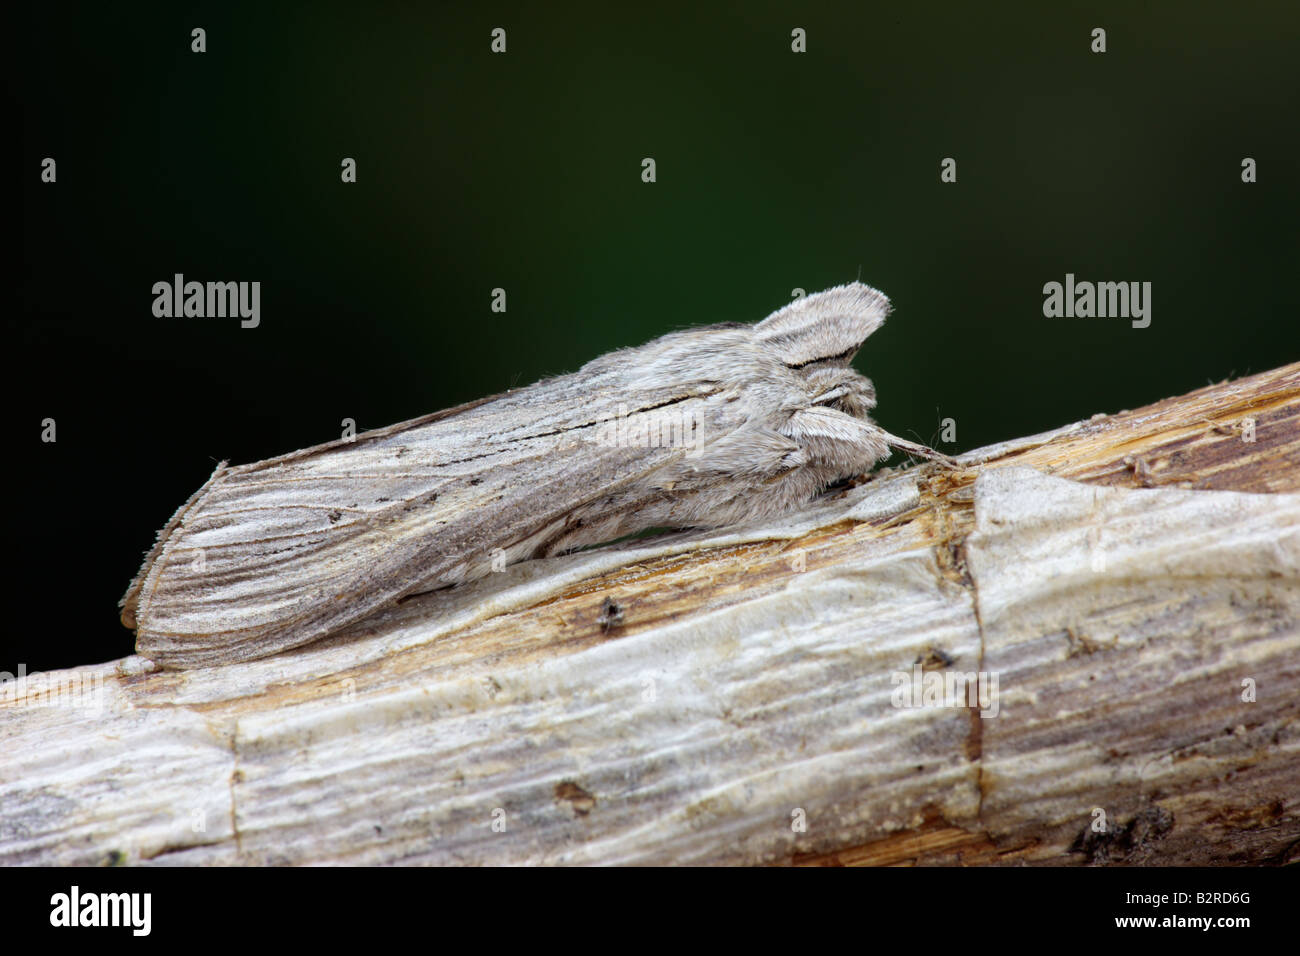 The Shark Cucullia umbratica at rest Potton Bedfordshire - Stock Image